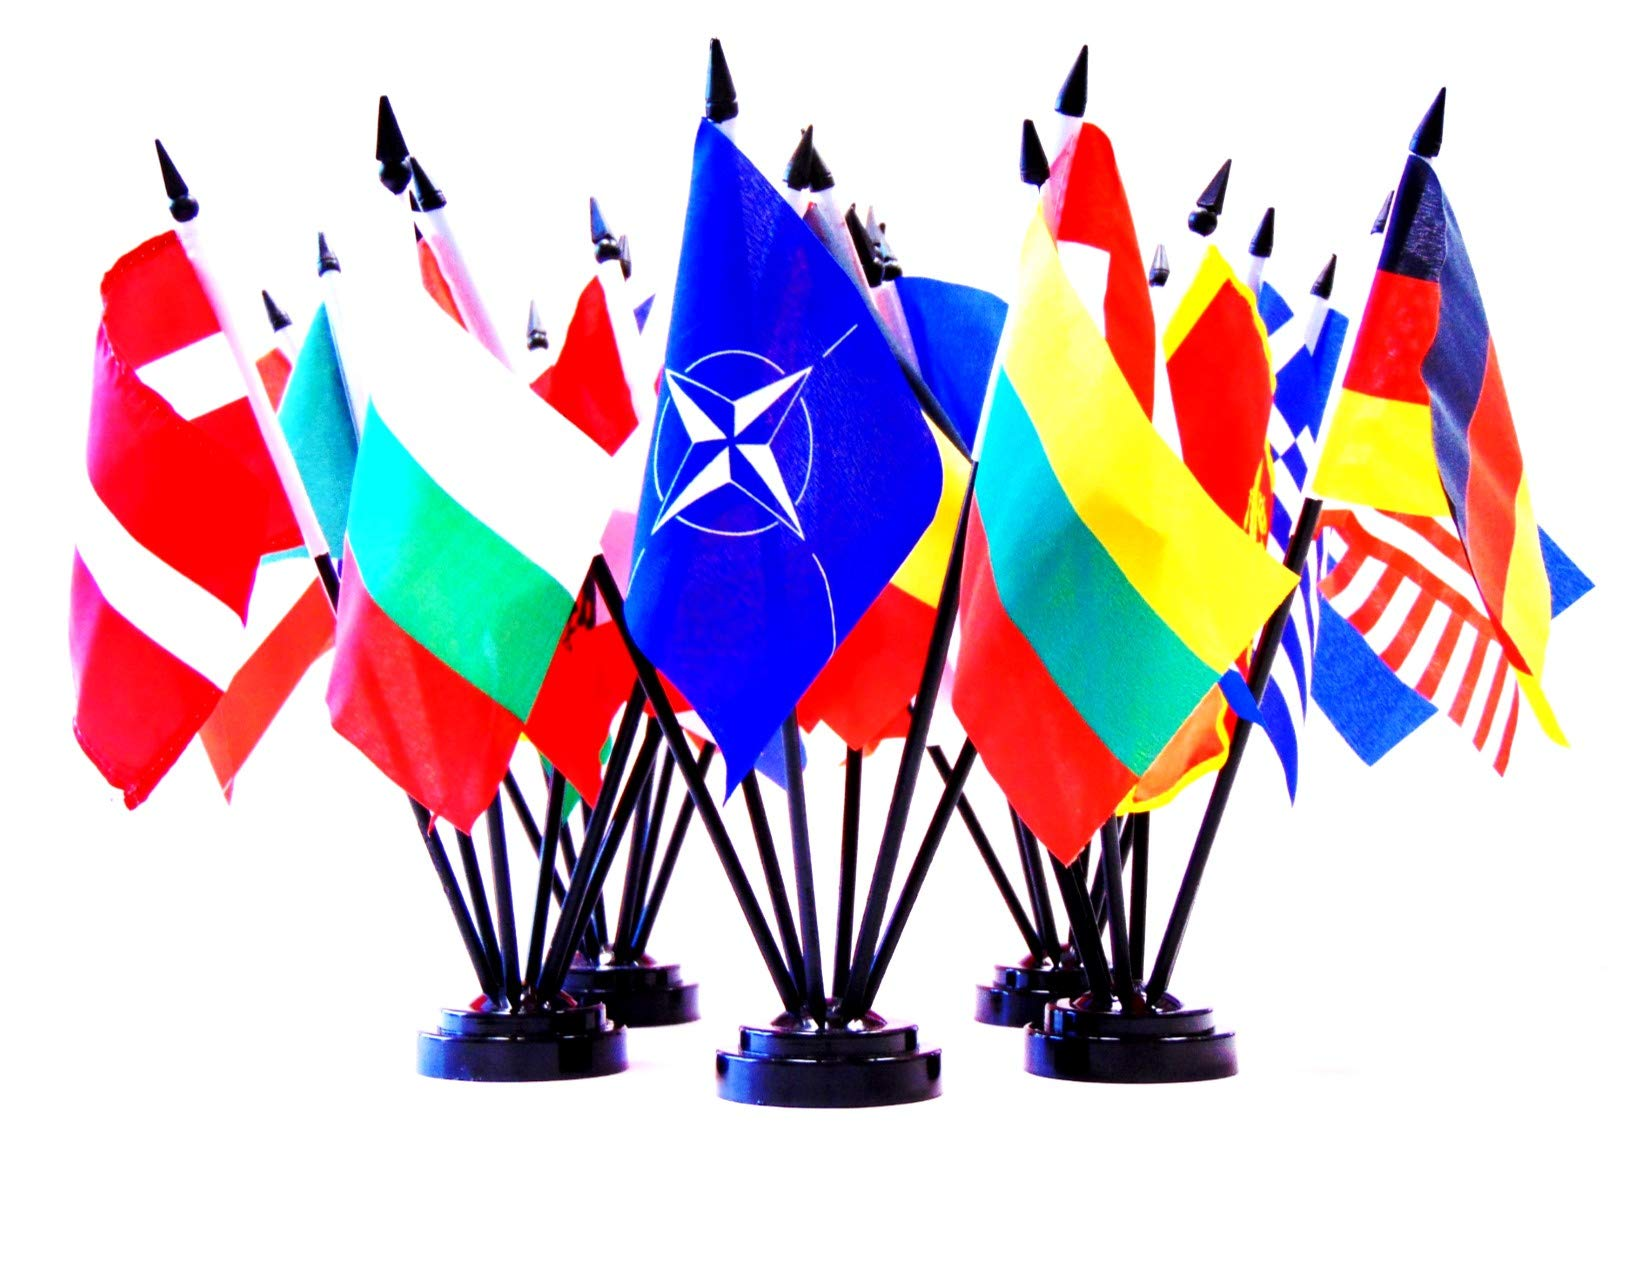 North Atlantic Treaty Organization (NATO) World Flag Set with BASES-30 Polyester 4''x6'' Flags, One Flag for Each Country in NATO, 4x6 Miniature Desk & Table Flags, Small Mini Stick Flags